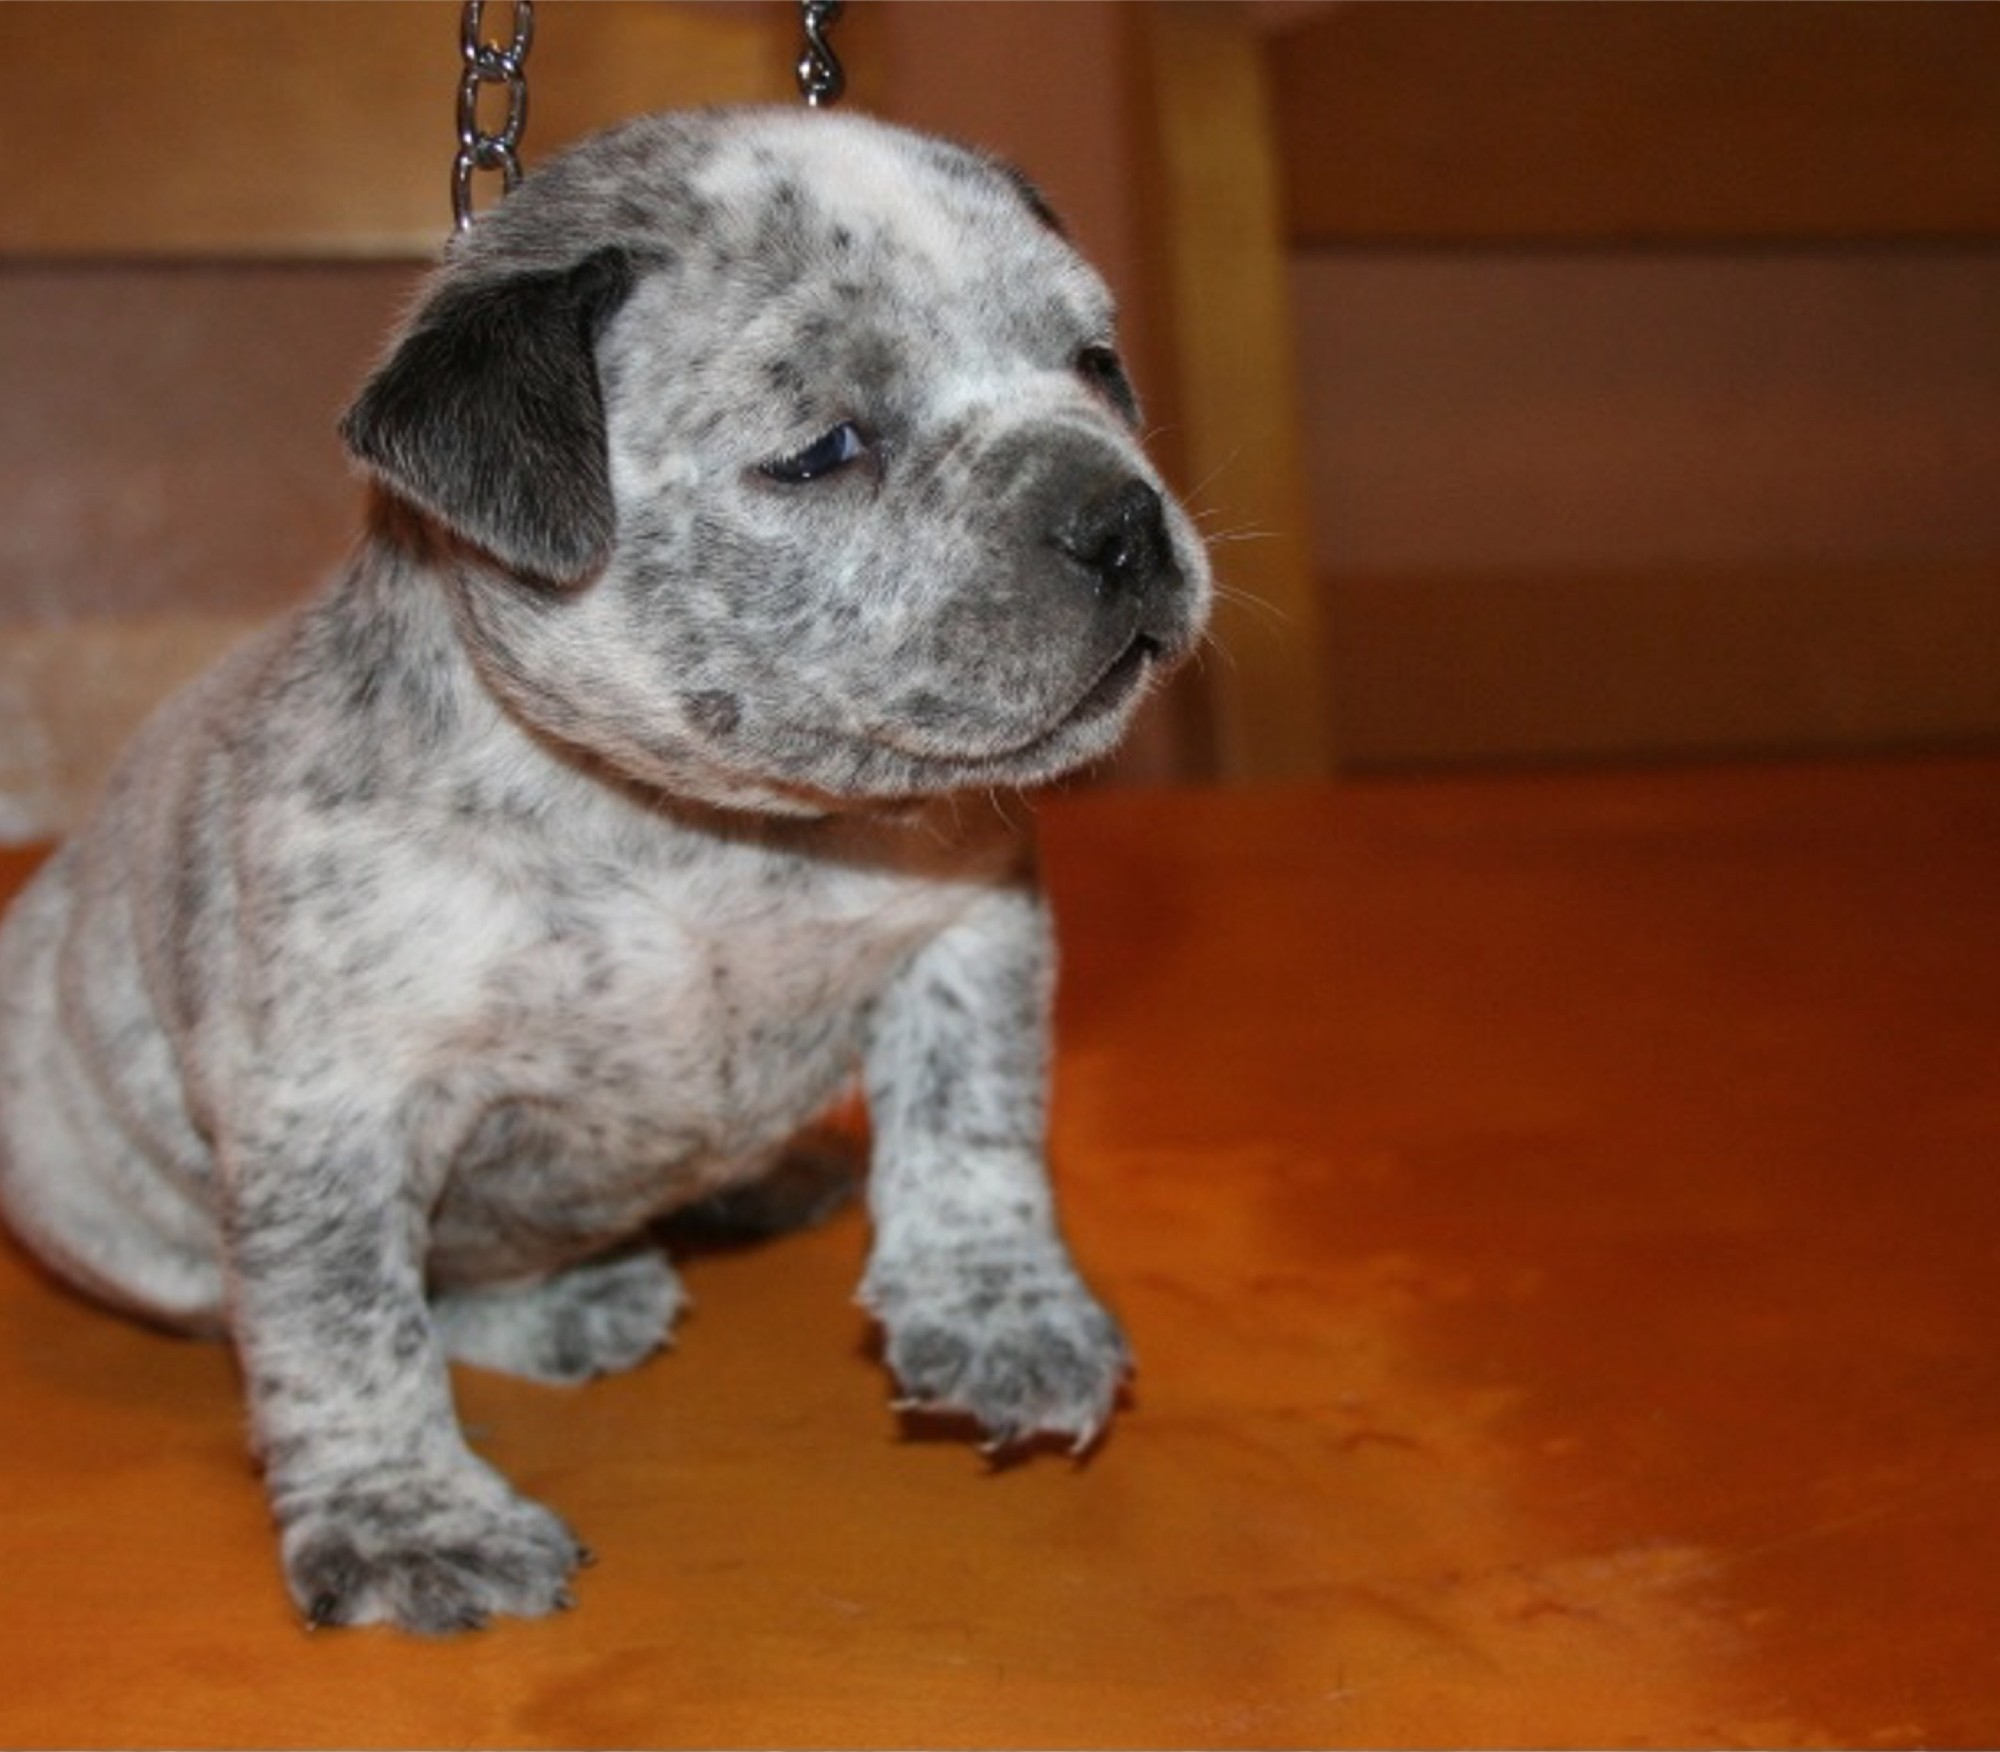 Blue pits for sale in kentucky - Pitbull Puppies For Sale Pitbull Kennel Pitbull For Sale Bule Pitbull For Sale